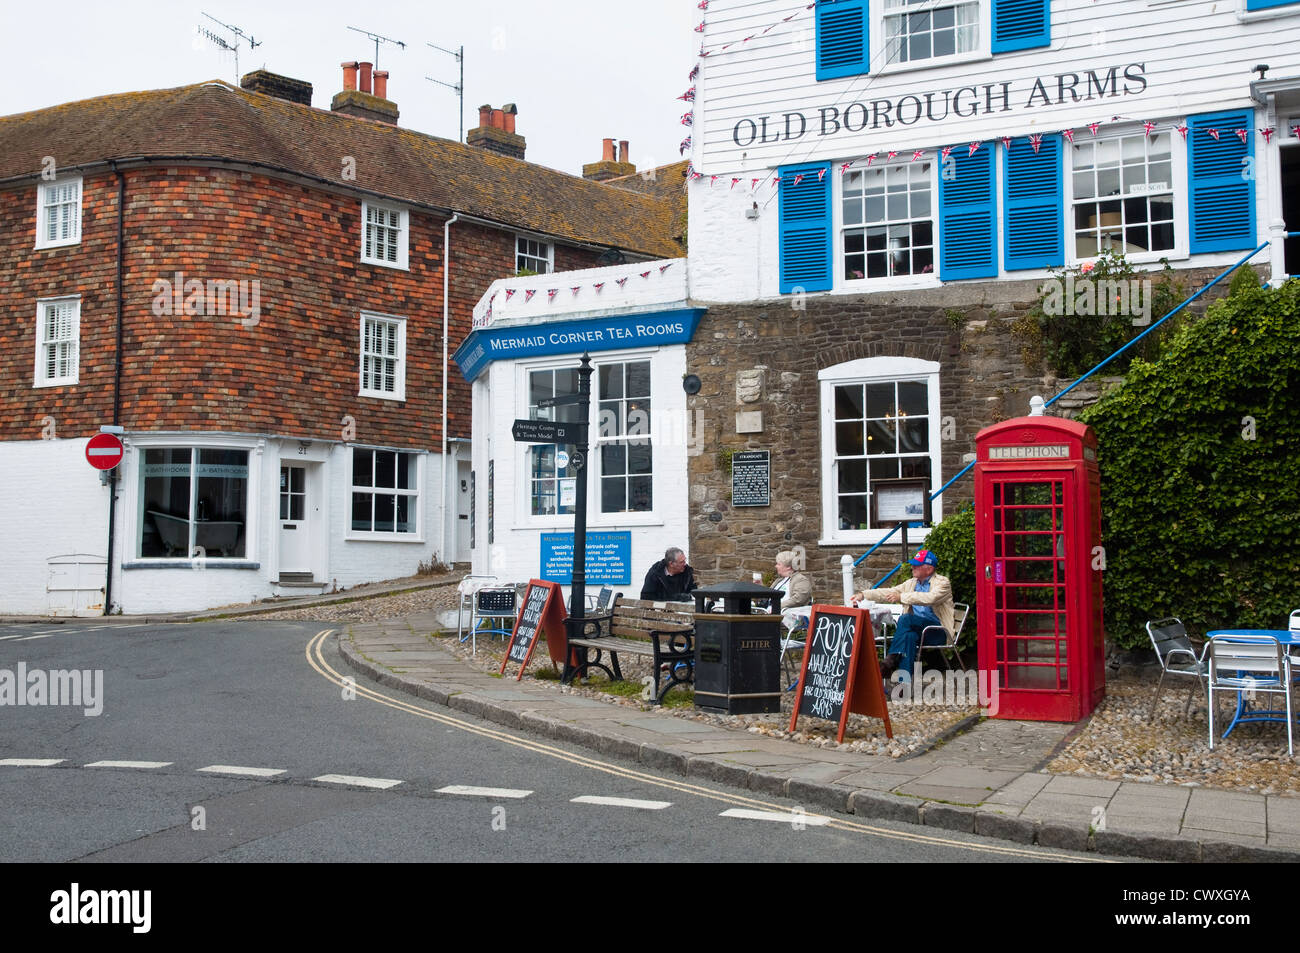 The Mermaid Cafe, and Old Borough Arms (pub / inn) at Rye, Sussex, UK. - Stock Image